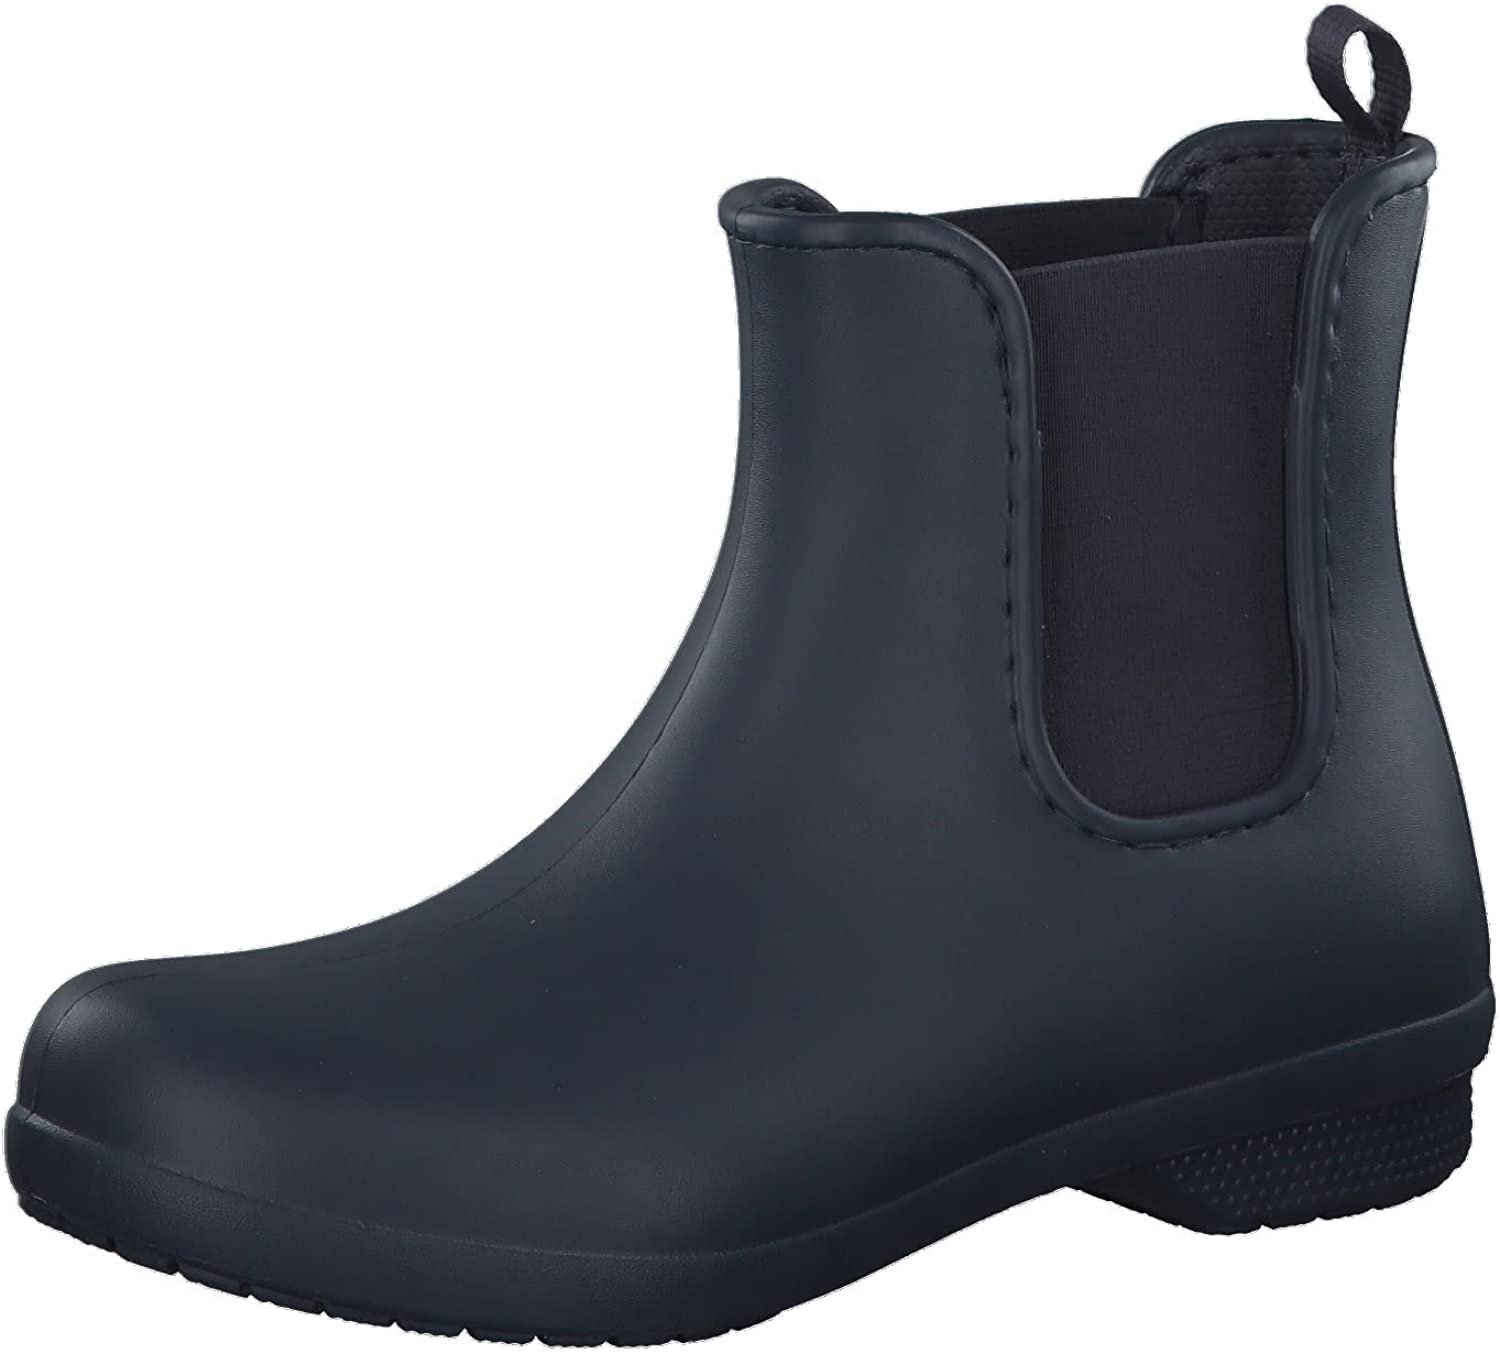 Crocs Women's Freesail Chelsea Ankle Boots | Rain Boots for Women | Water Shoes